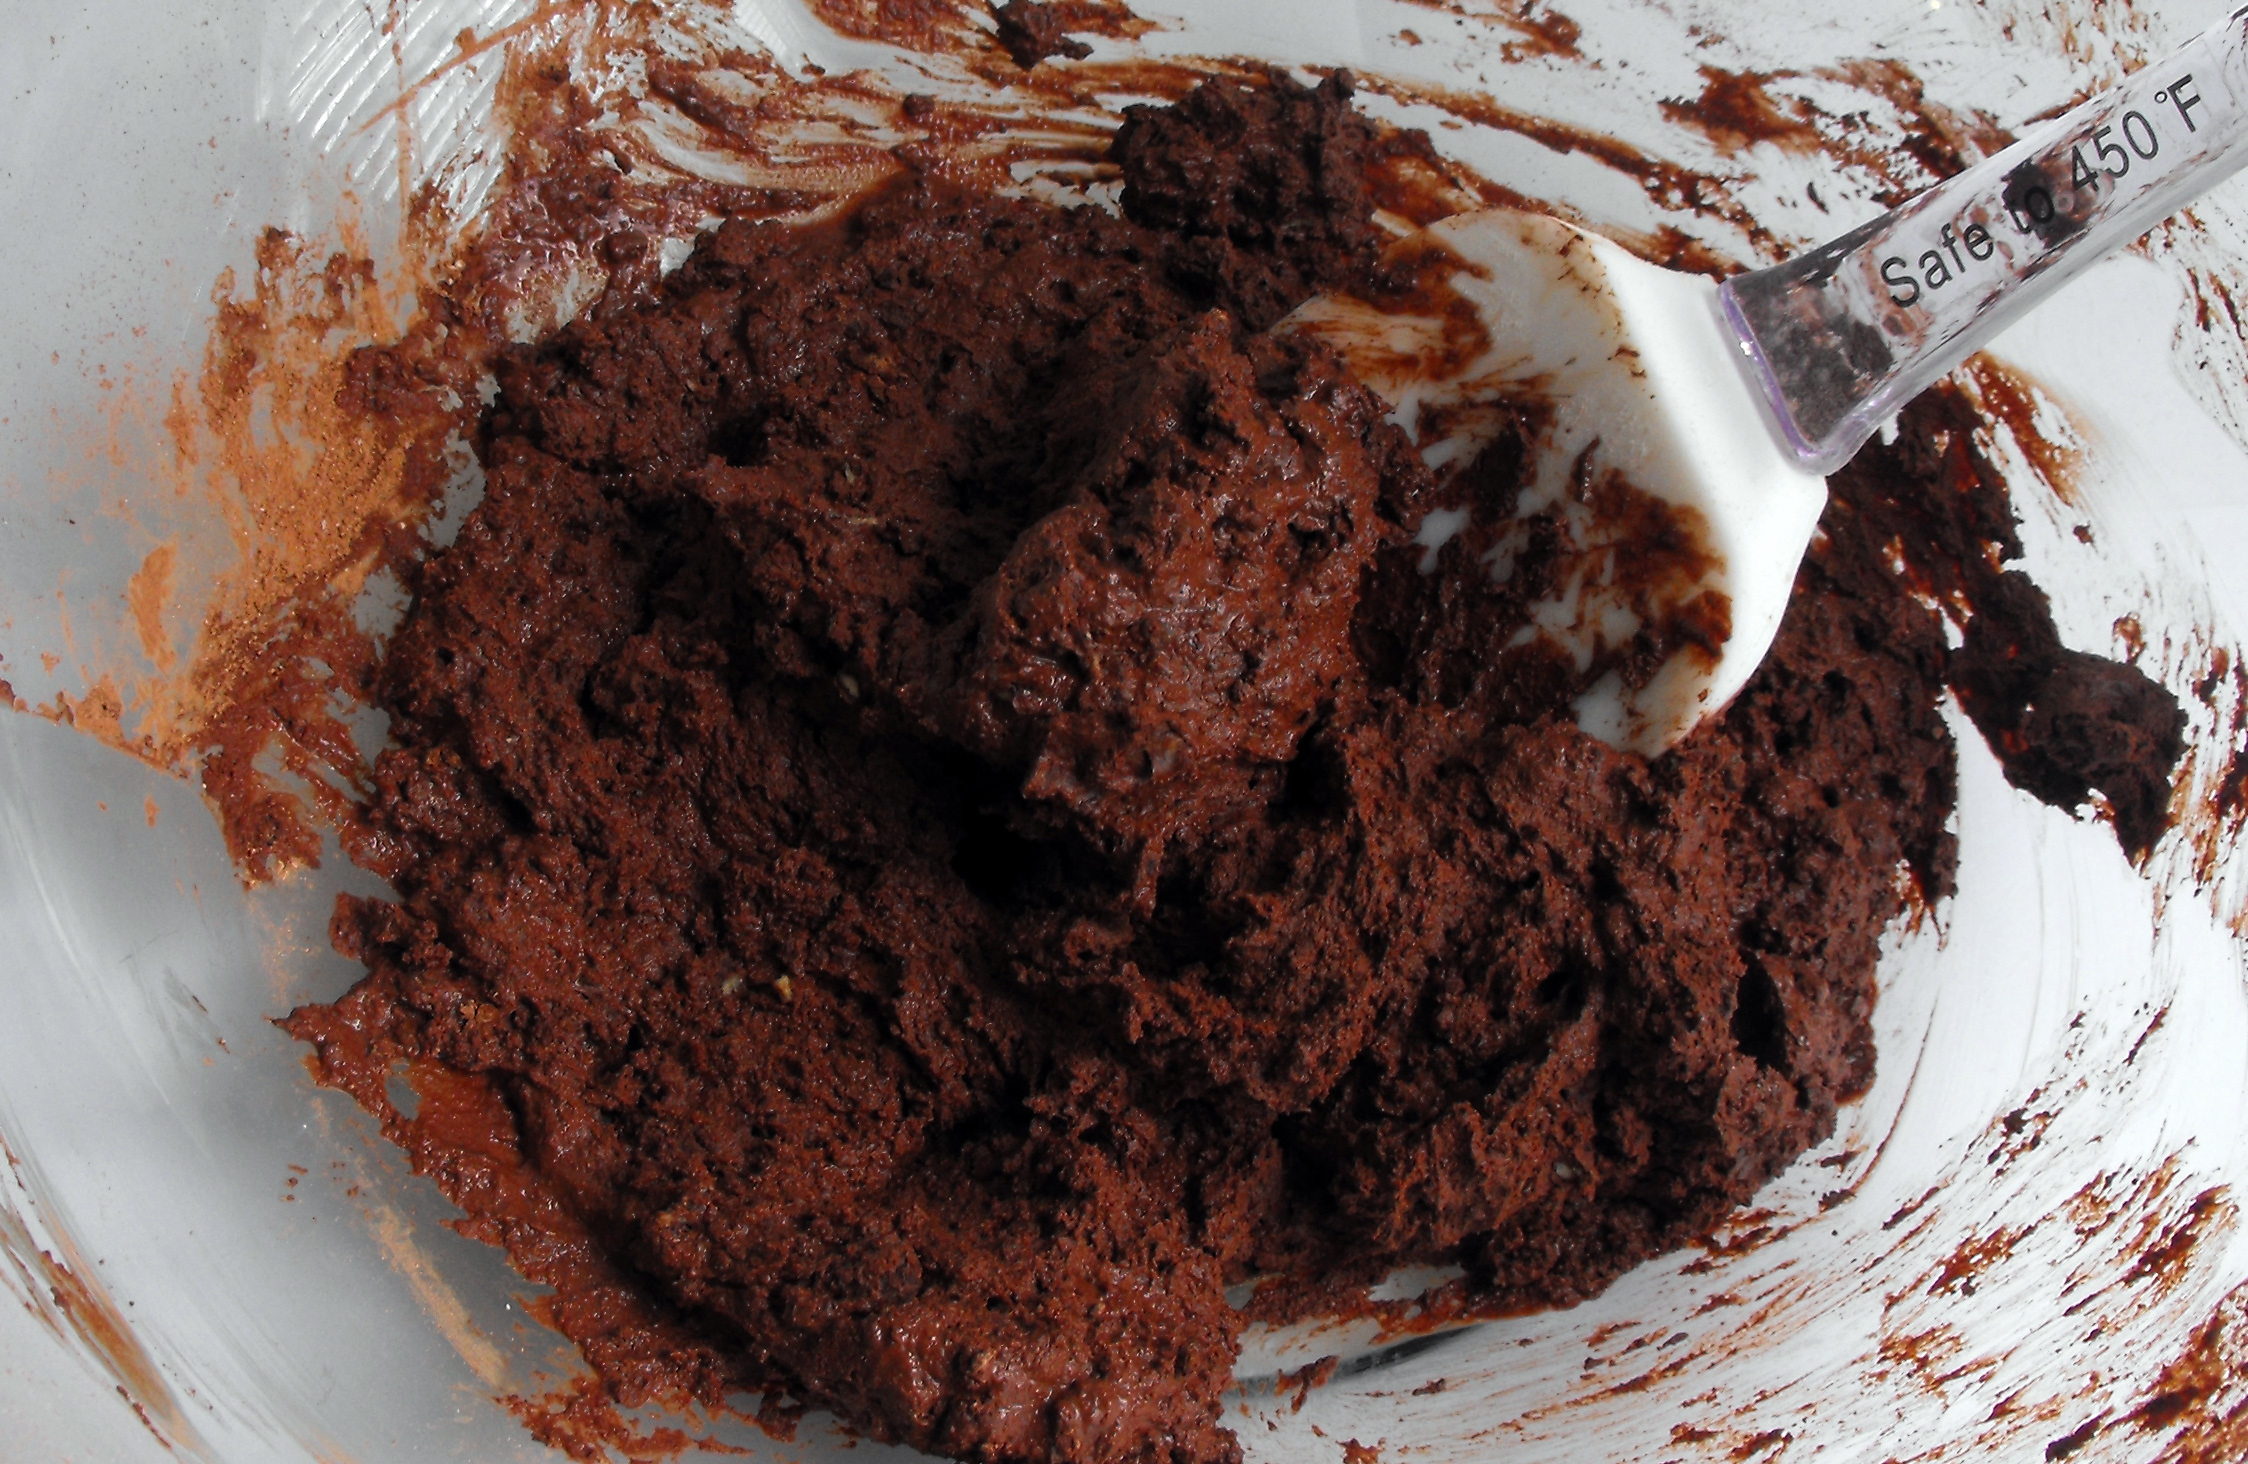 photo of gluten free brownie batter